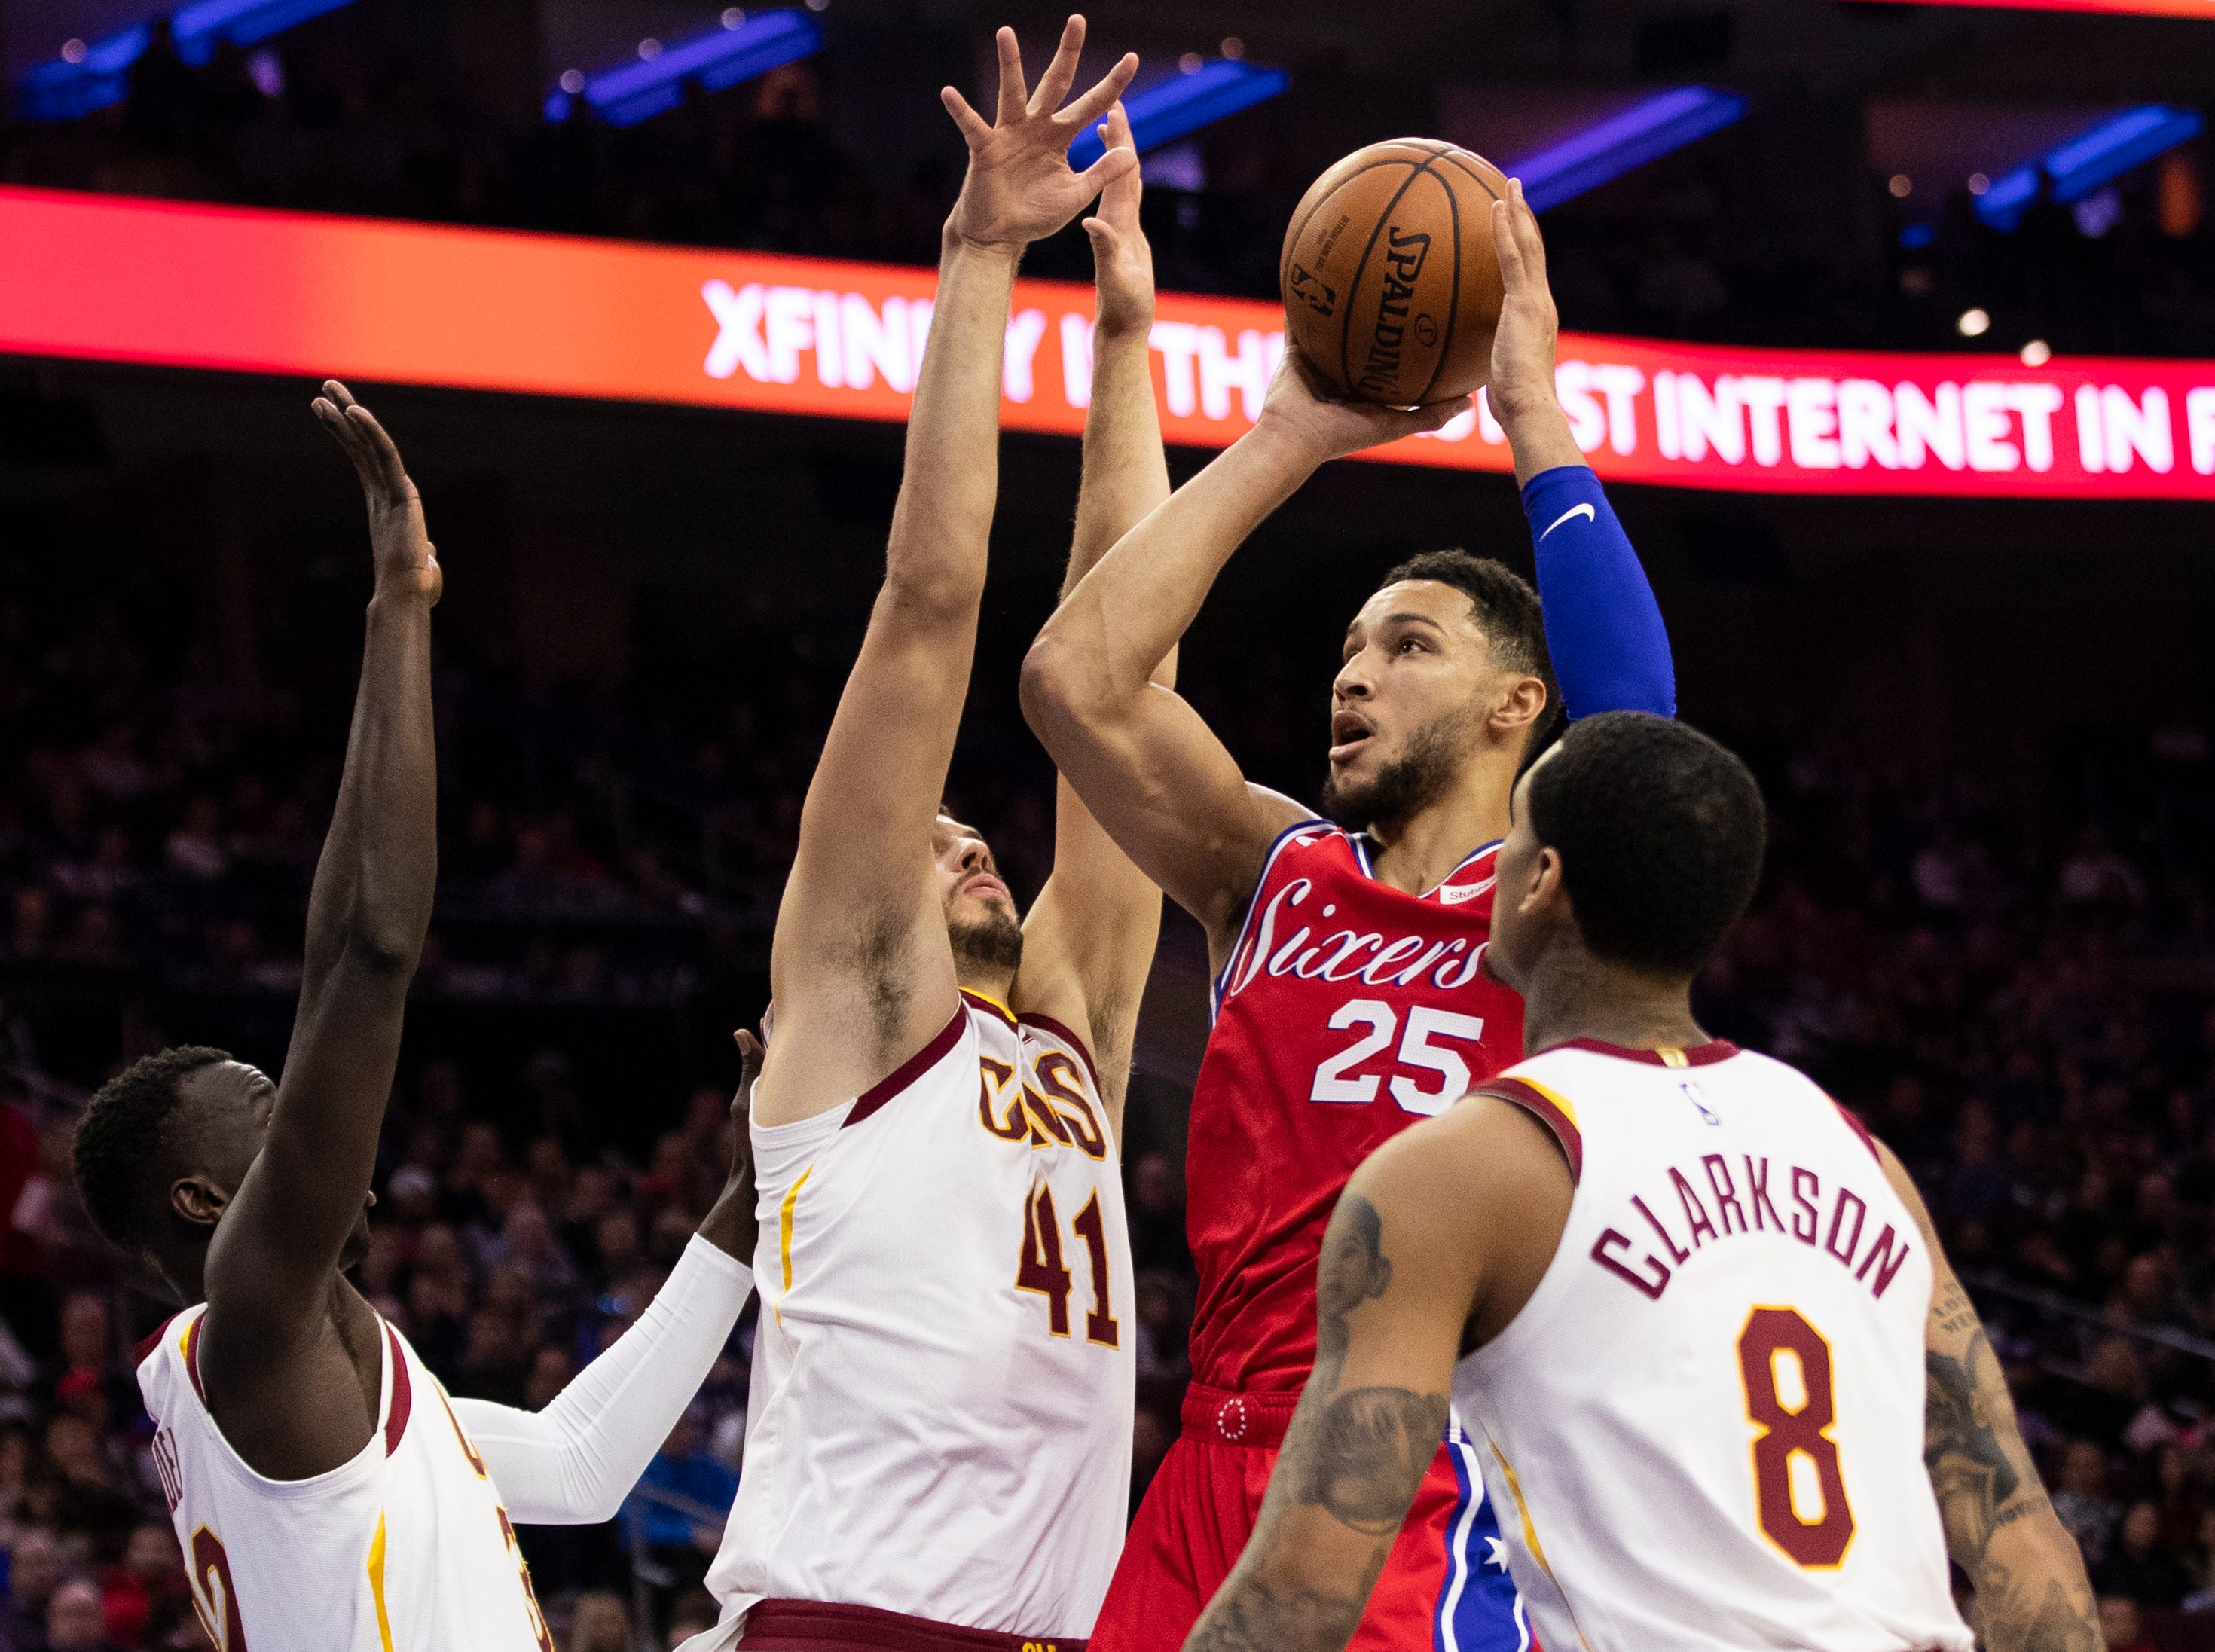 Philadelphia 76ers' Ben Simmons (25), of Australia, shoots against Cleveland Cavaliers' Deng Adel, left, of South Sudan, Ante Zizic (41), of Croatia, and Jordan Clarkson (8) during the first half of an NBA basketball game, Tuesday, March 12, 2019, in Philadelphia. The 76ers won 106-99. (AP Photo/Chris Szagola)